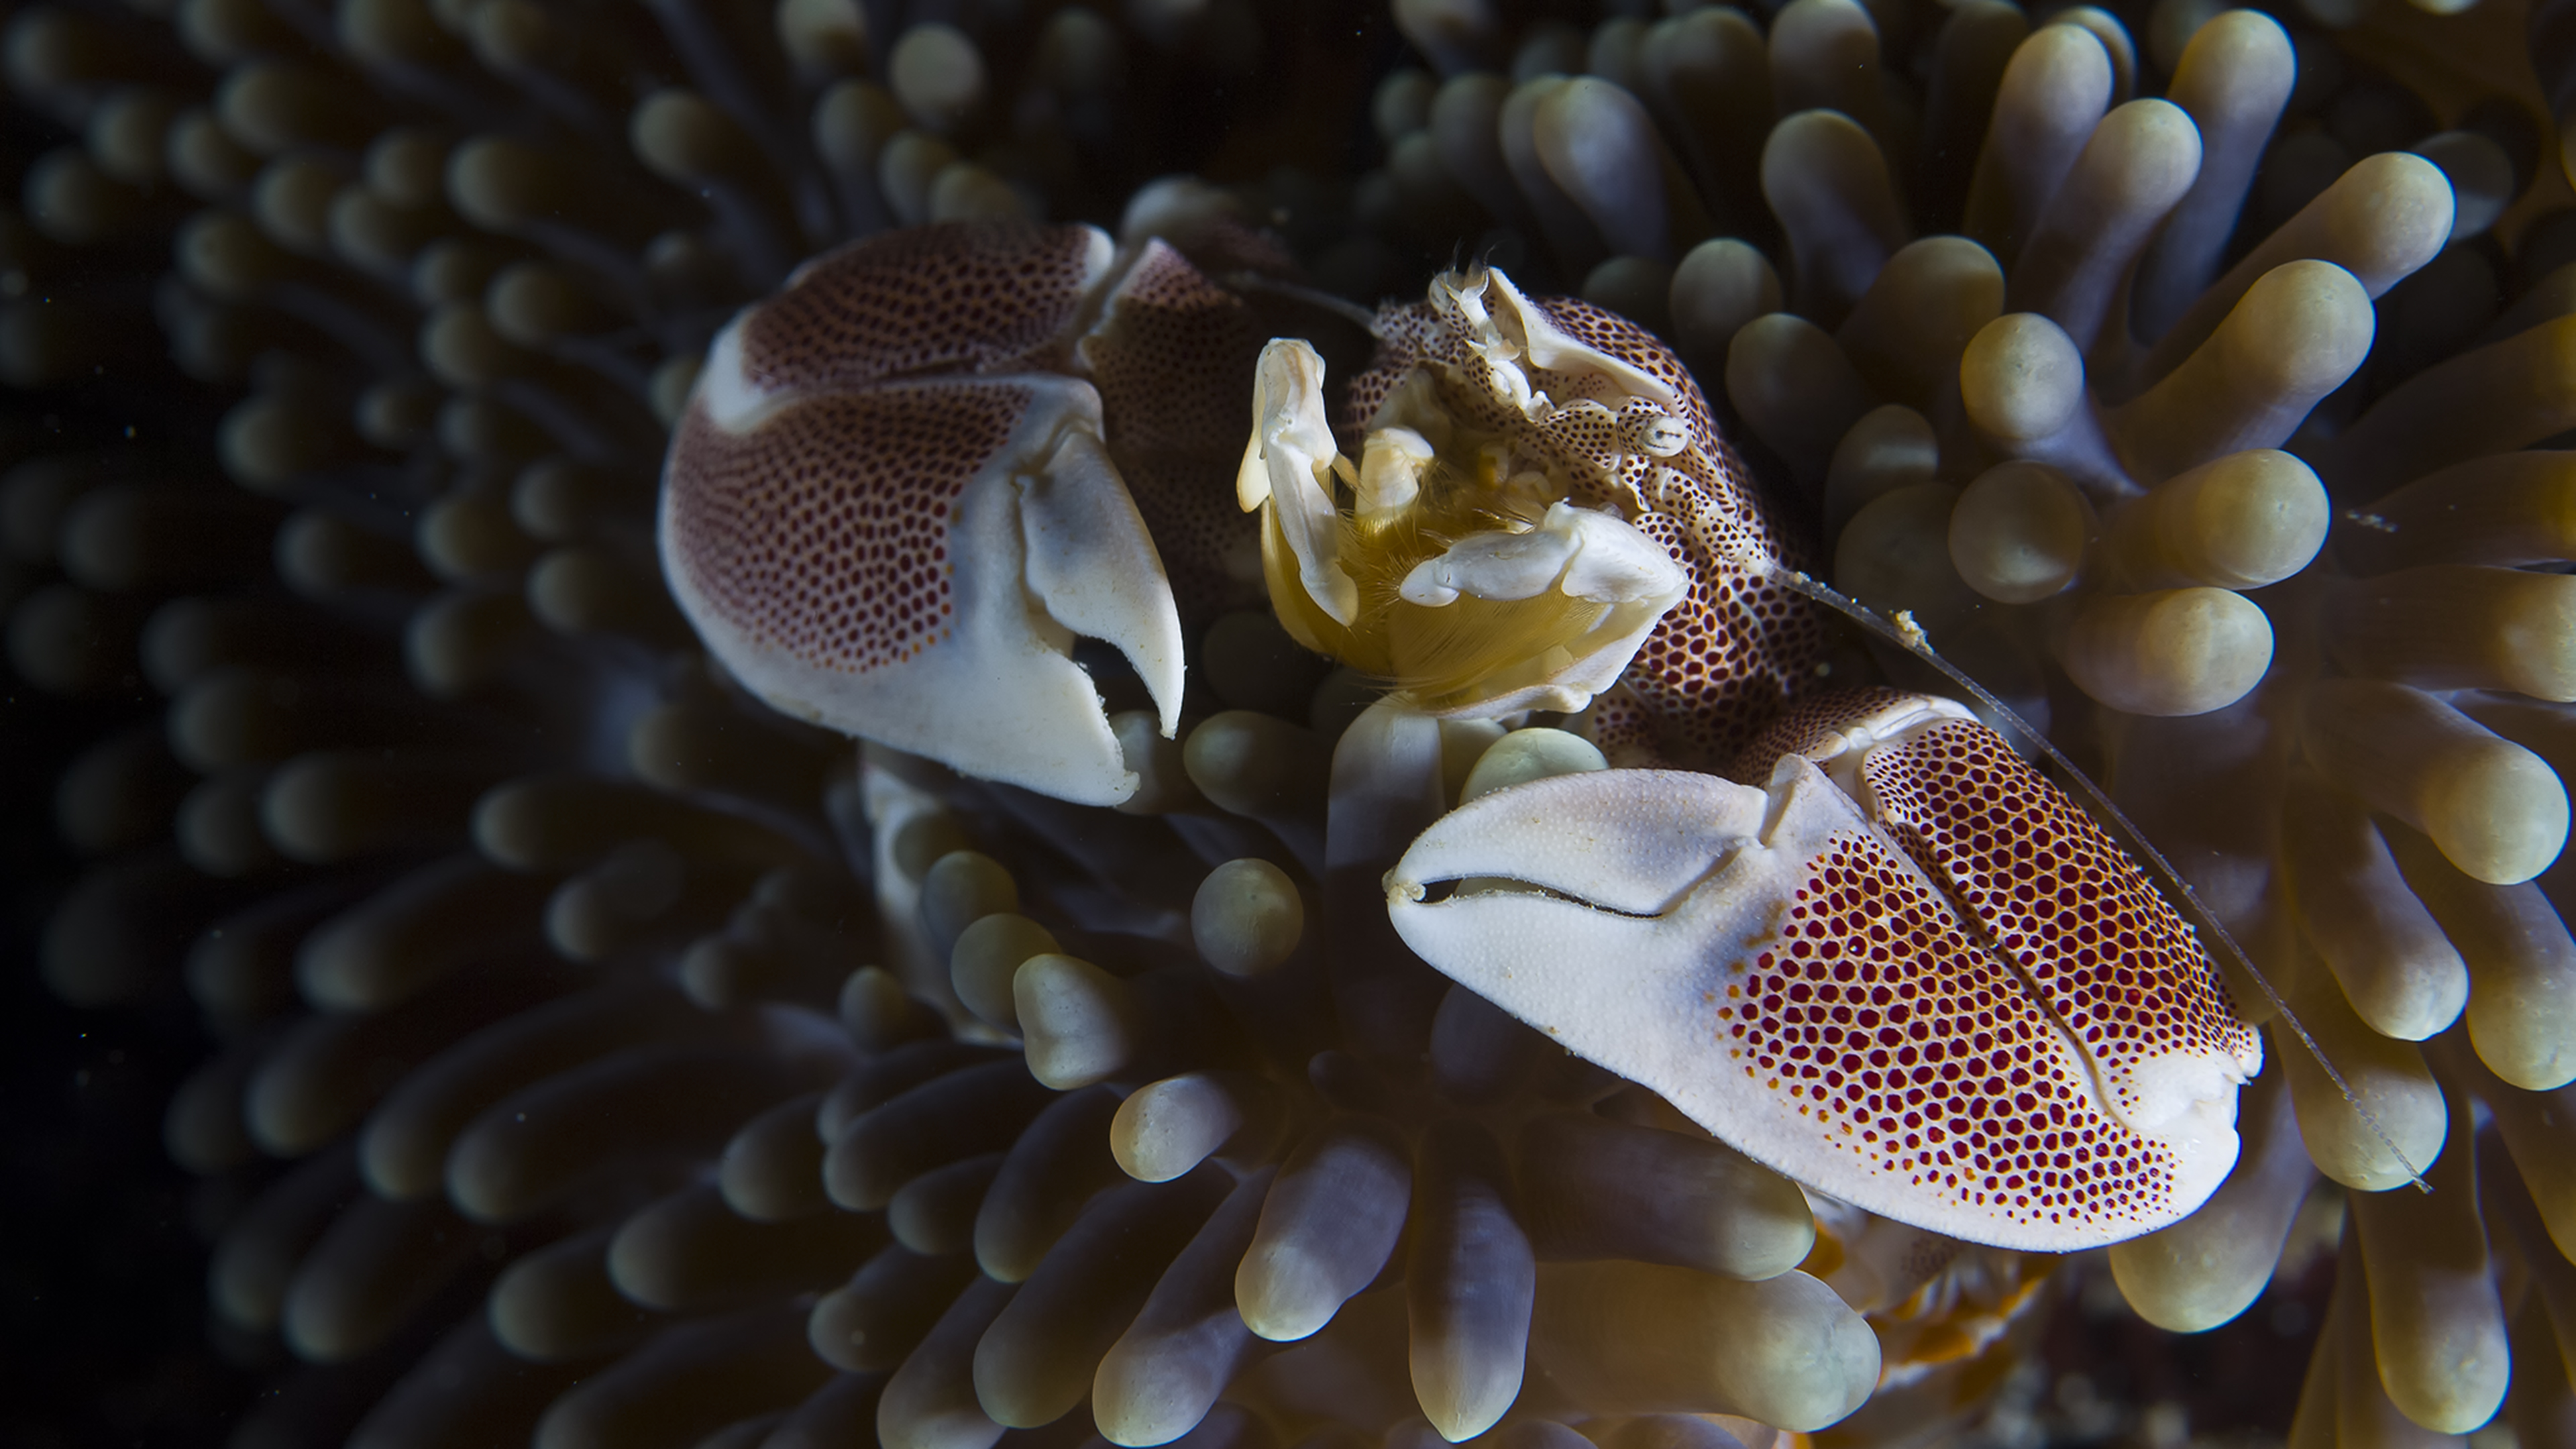 Porcelain Crab in Anemone